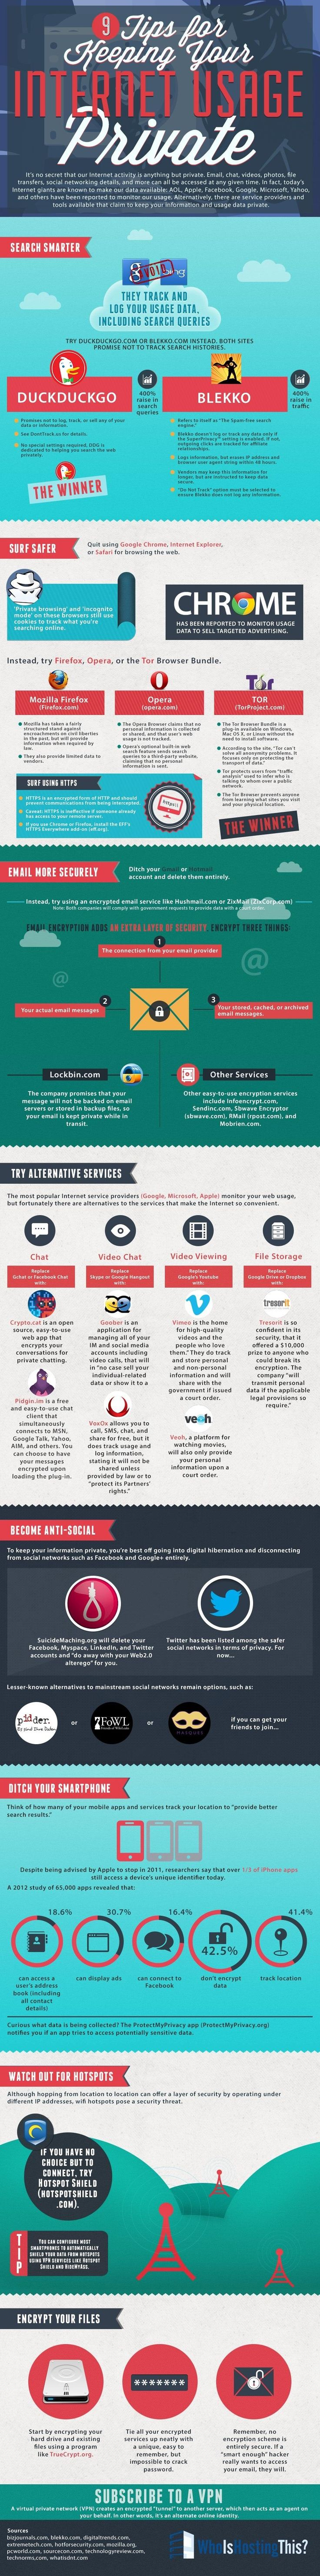 How to Keep Your Internet Usage Private [INFOGRAPHIC]